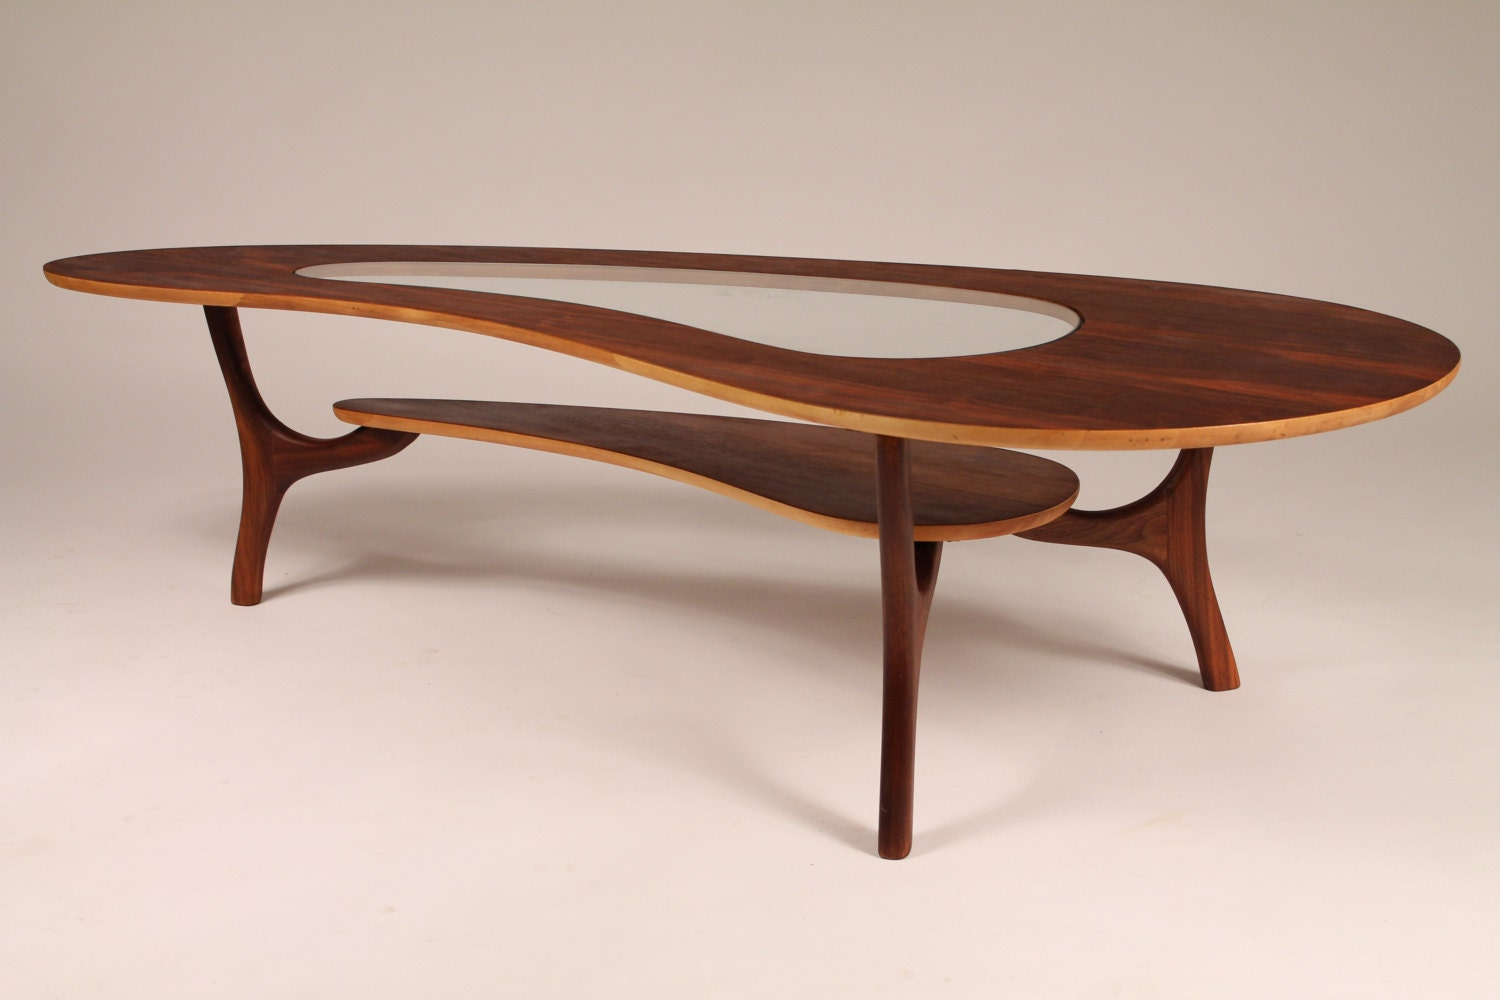 1960 Walnut Coffee Table Veneer Kidney Shaped With Center Glass Top Fully Restored Haute